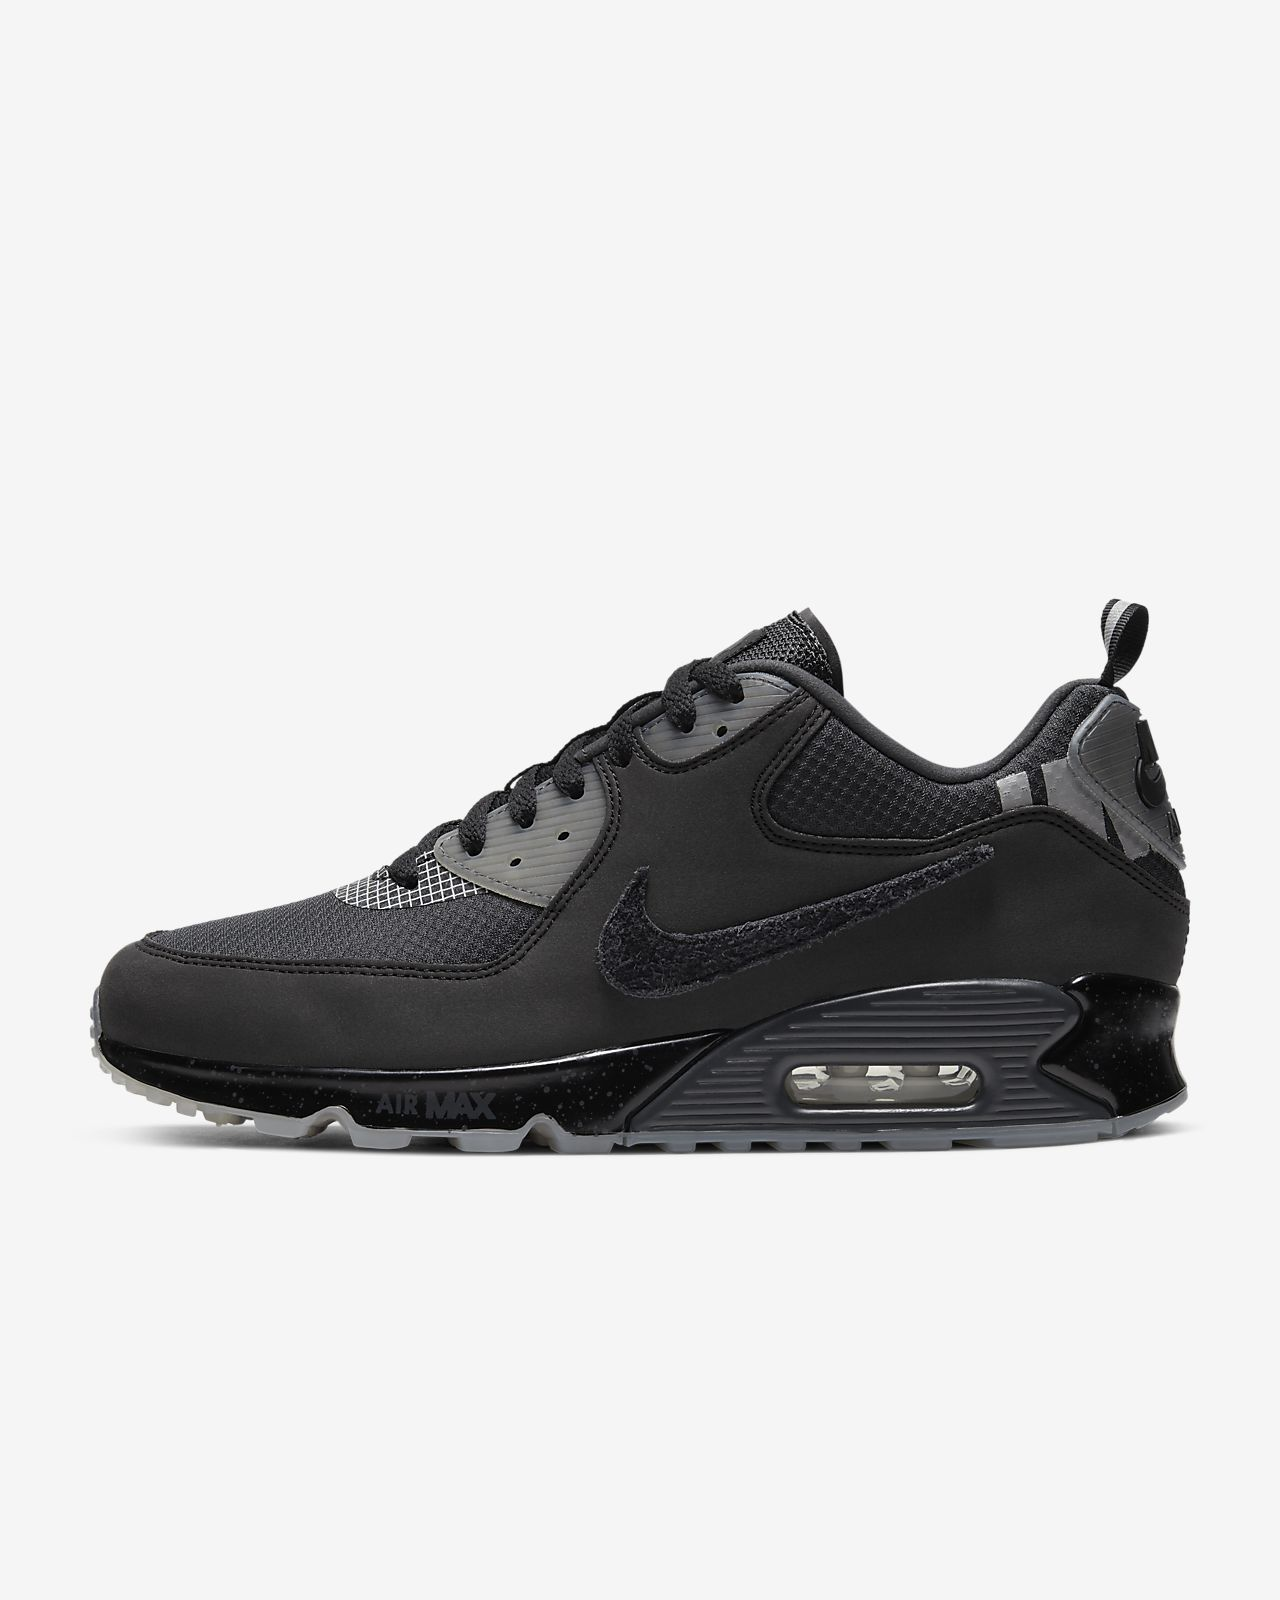 Nike x Undefeated Air Max 90 Shoe